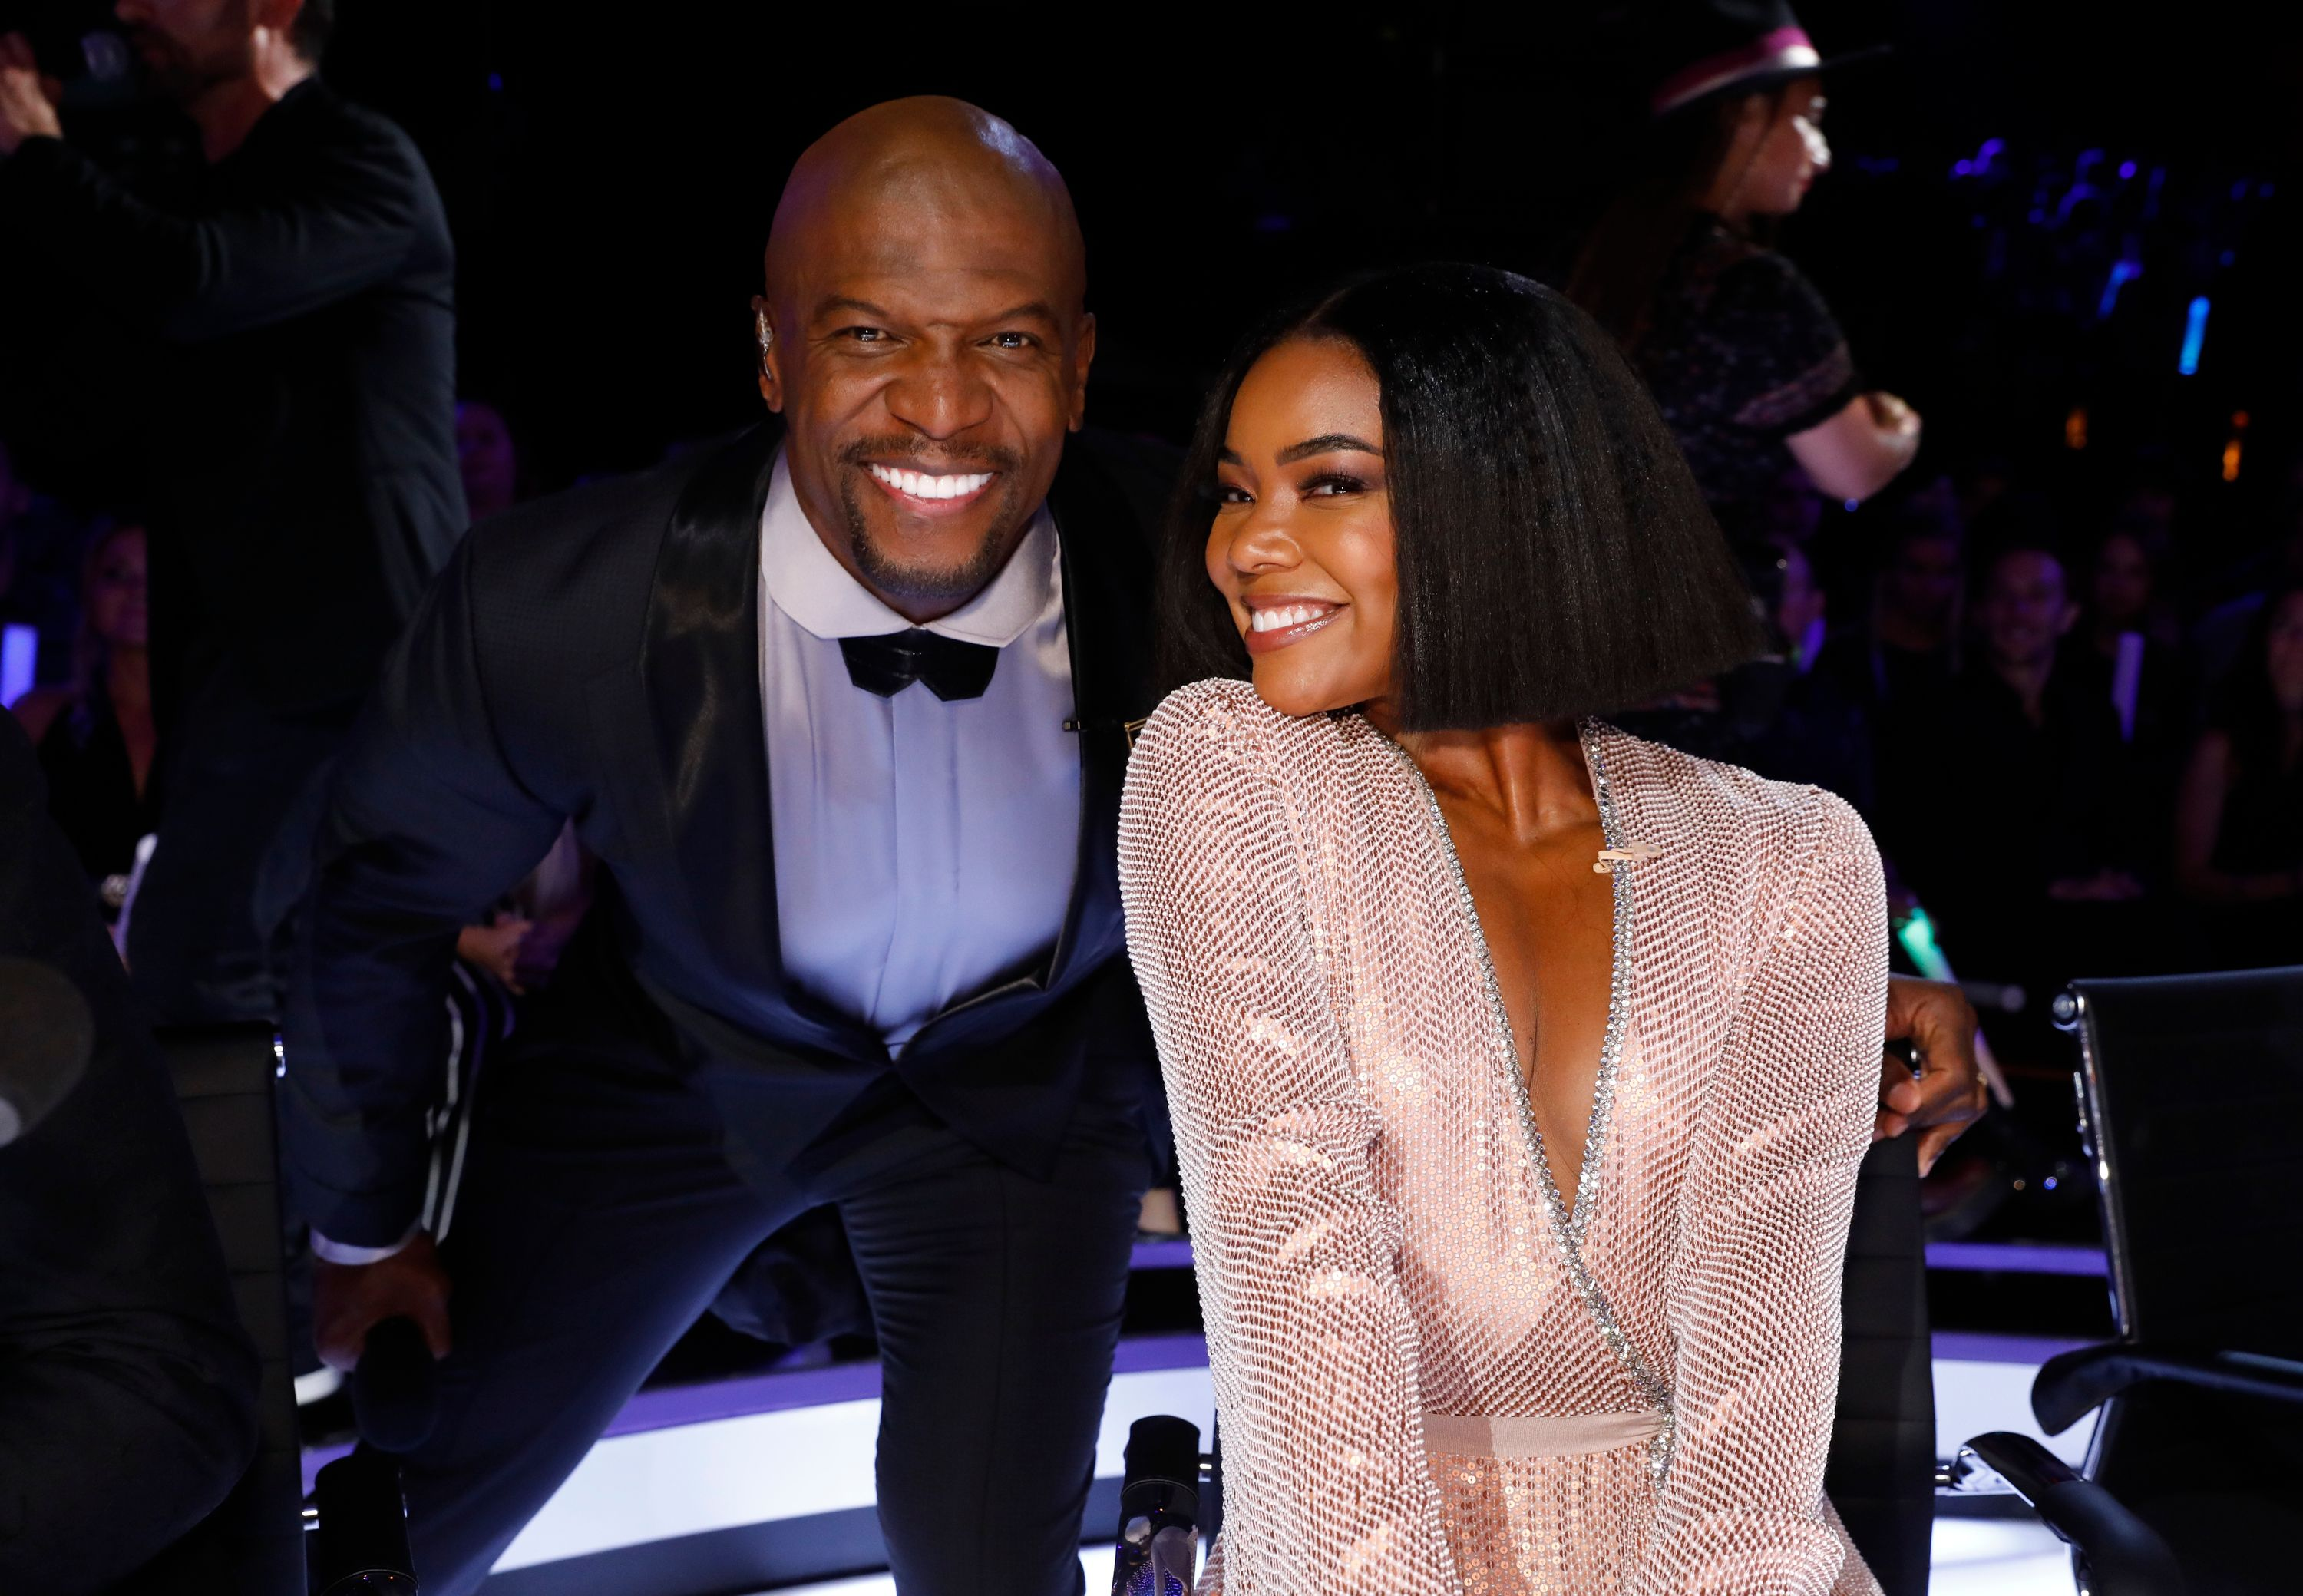 Terry Crews and Gabrielle Union photographed together